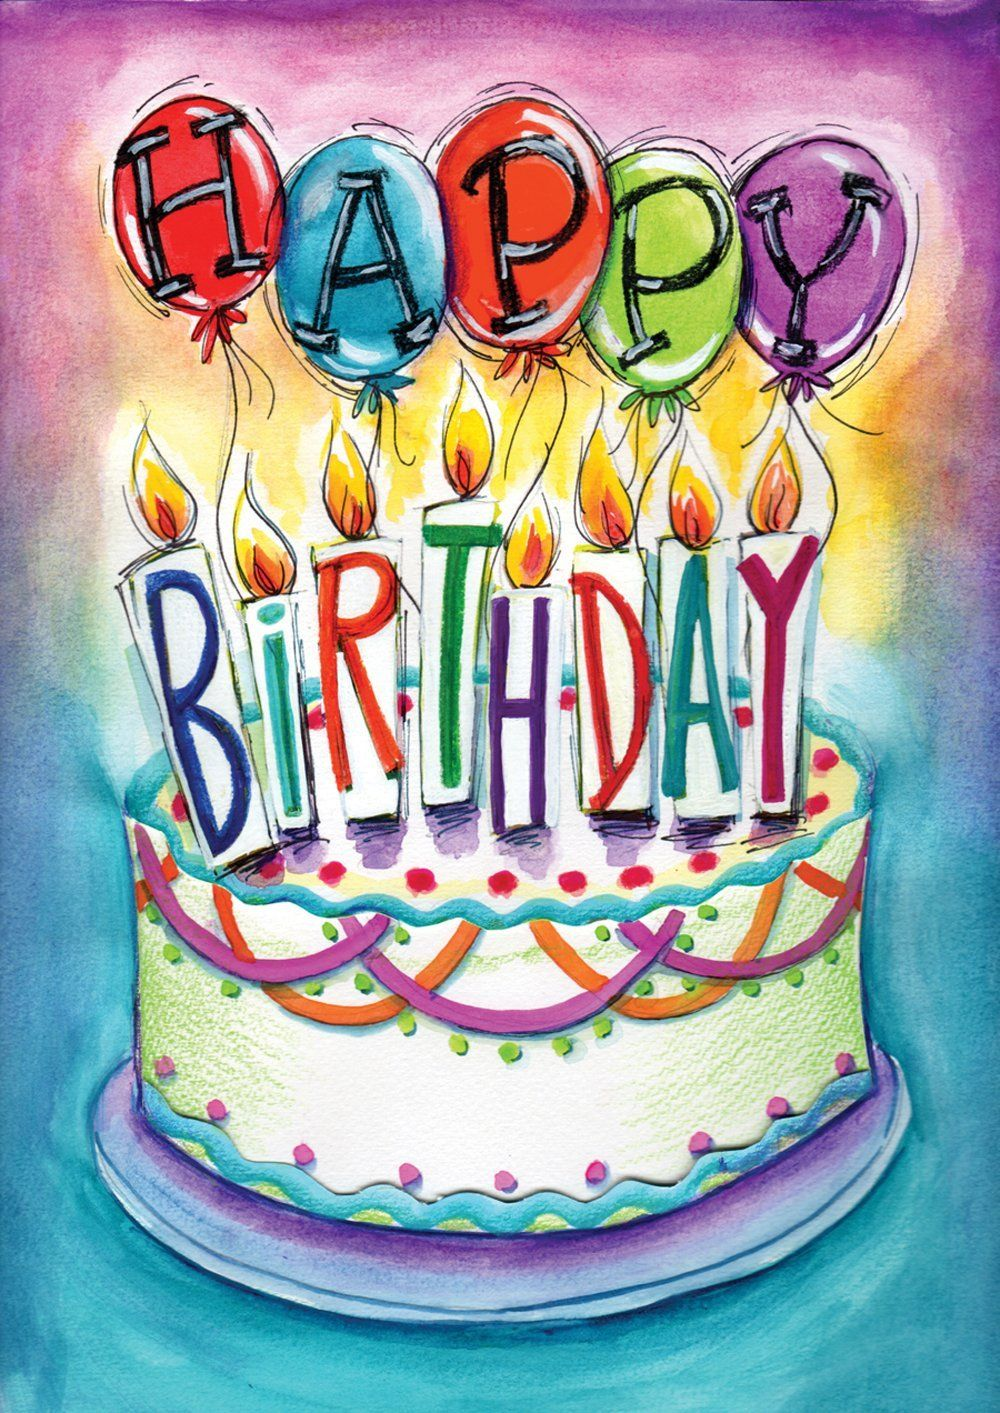 Pin By Patricia Vazquez Espinoza On Inspirational Sayings Happy Birthday Greetings Happy Birthday Cards Birthday Wishes